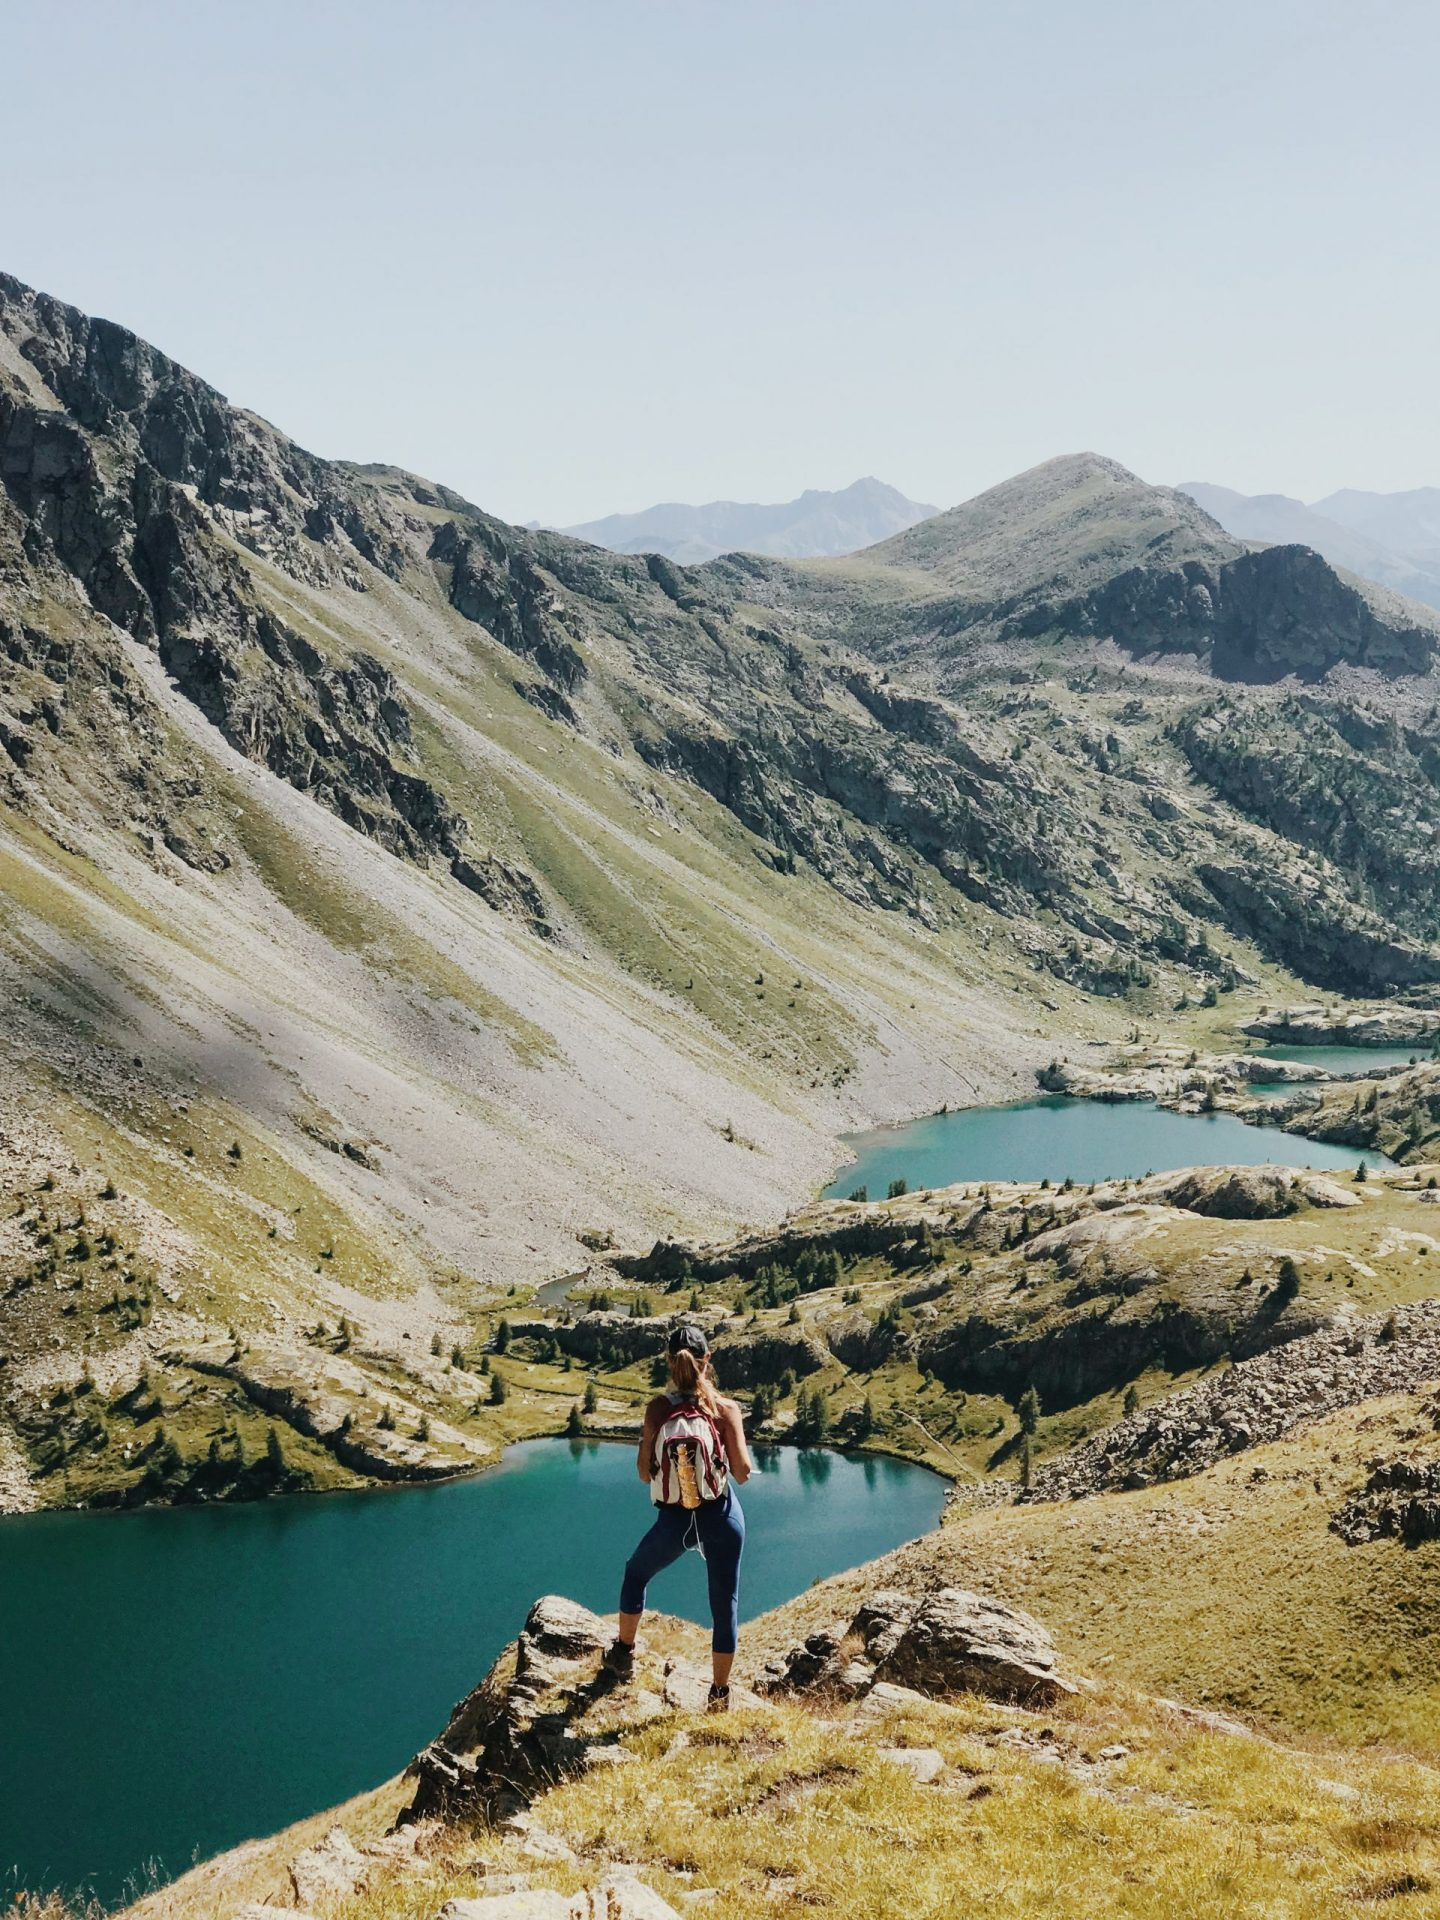 Hike to Vens Lakes and Tortisse Arc – Mercantour National Parc – France/Italy